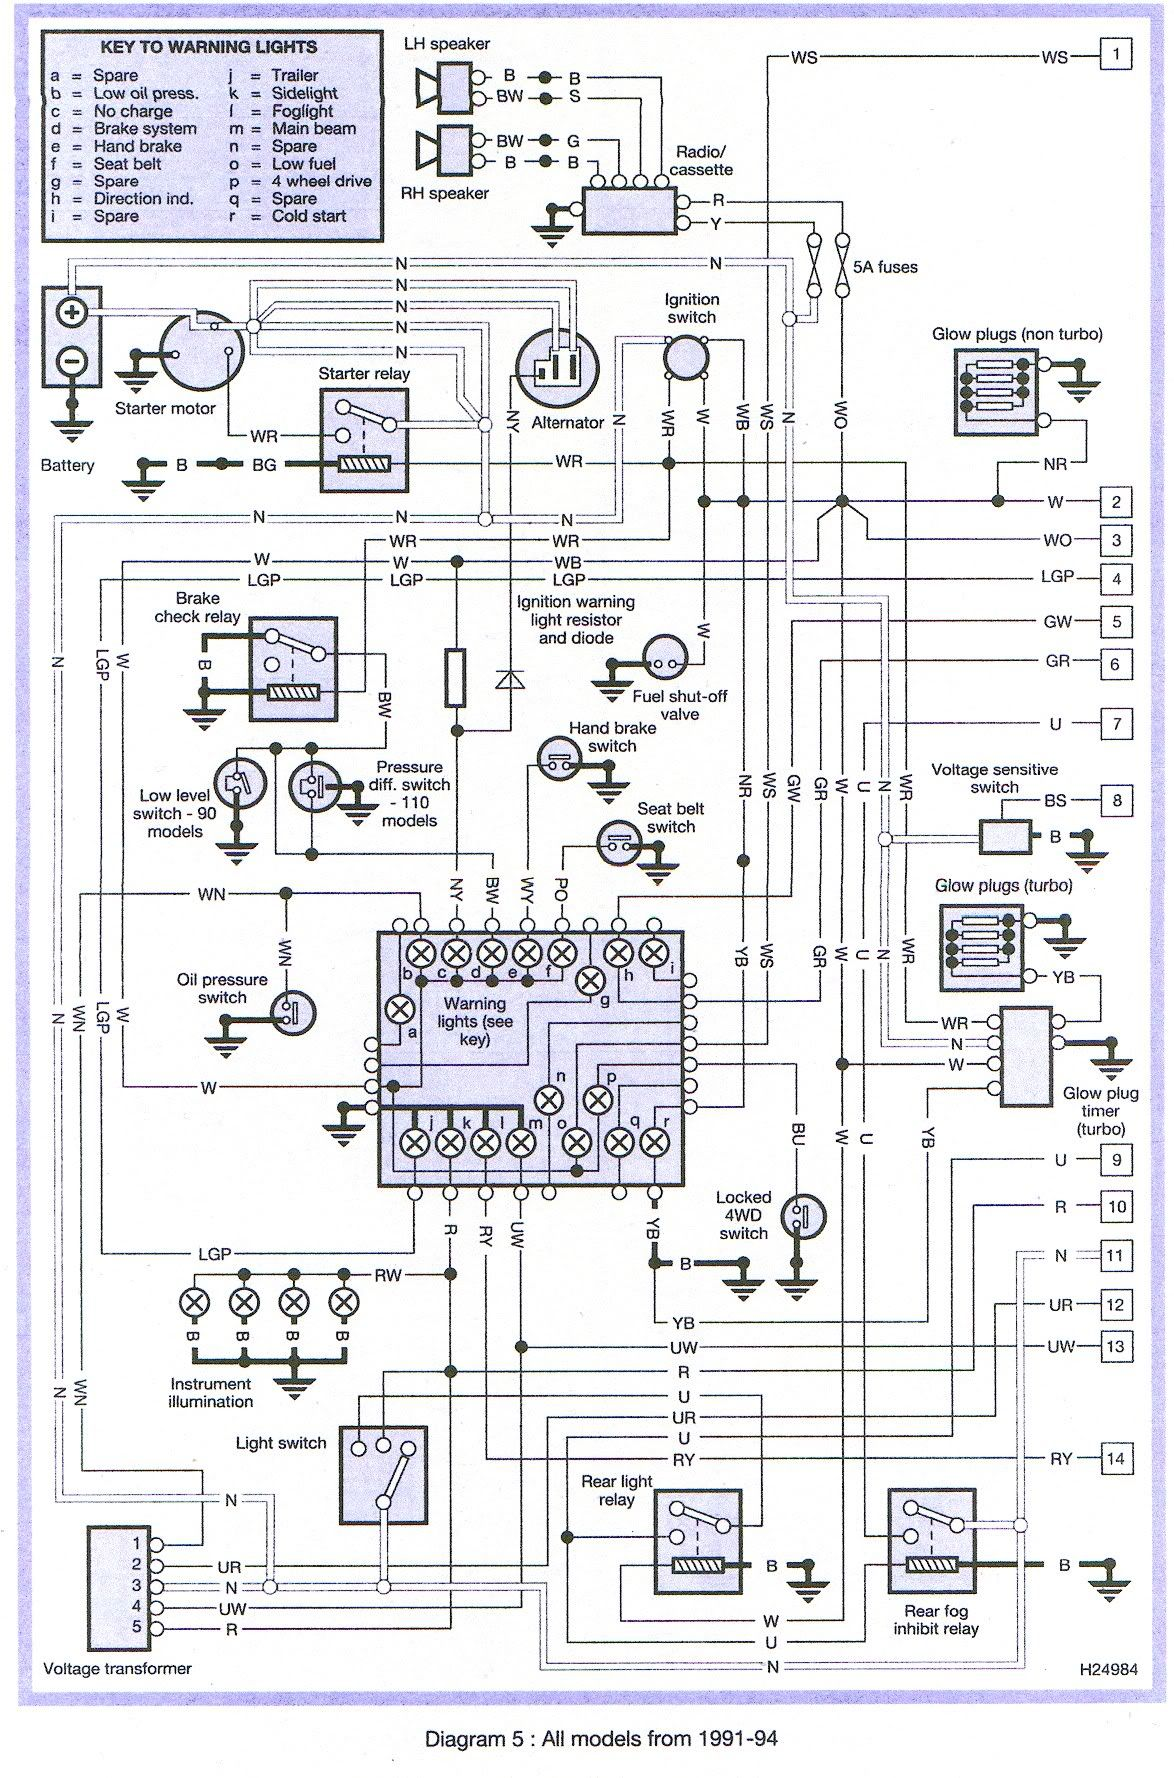 lr3 engine diagram free wiring diagram for you u2022 rh dollardeal store Land Rover D90 Wiring Diagrams How a Land Rover Rear Wiper Motor Wire